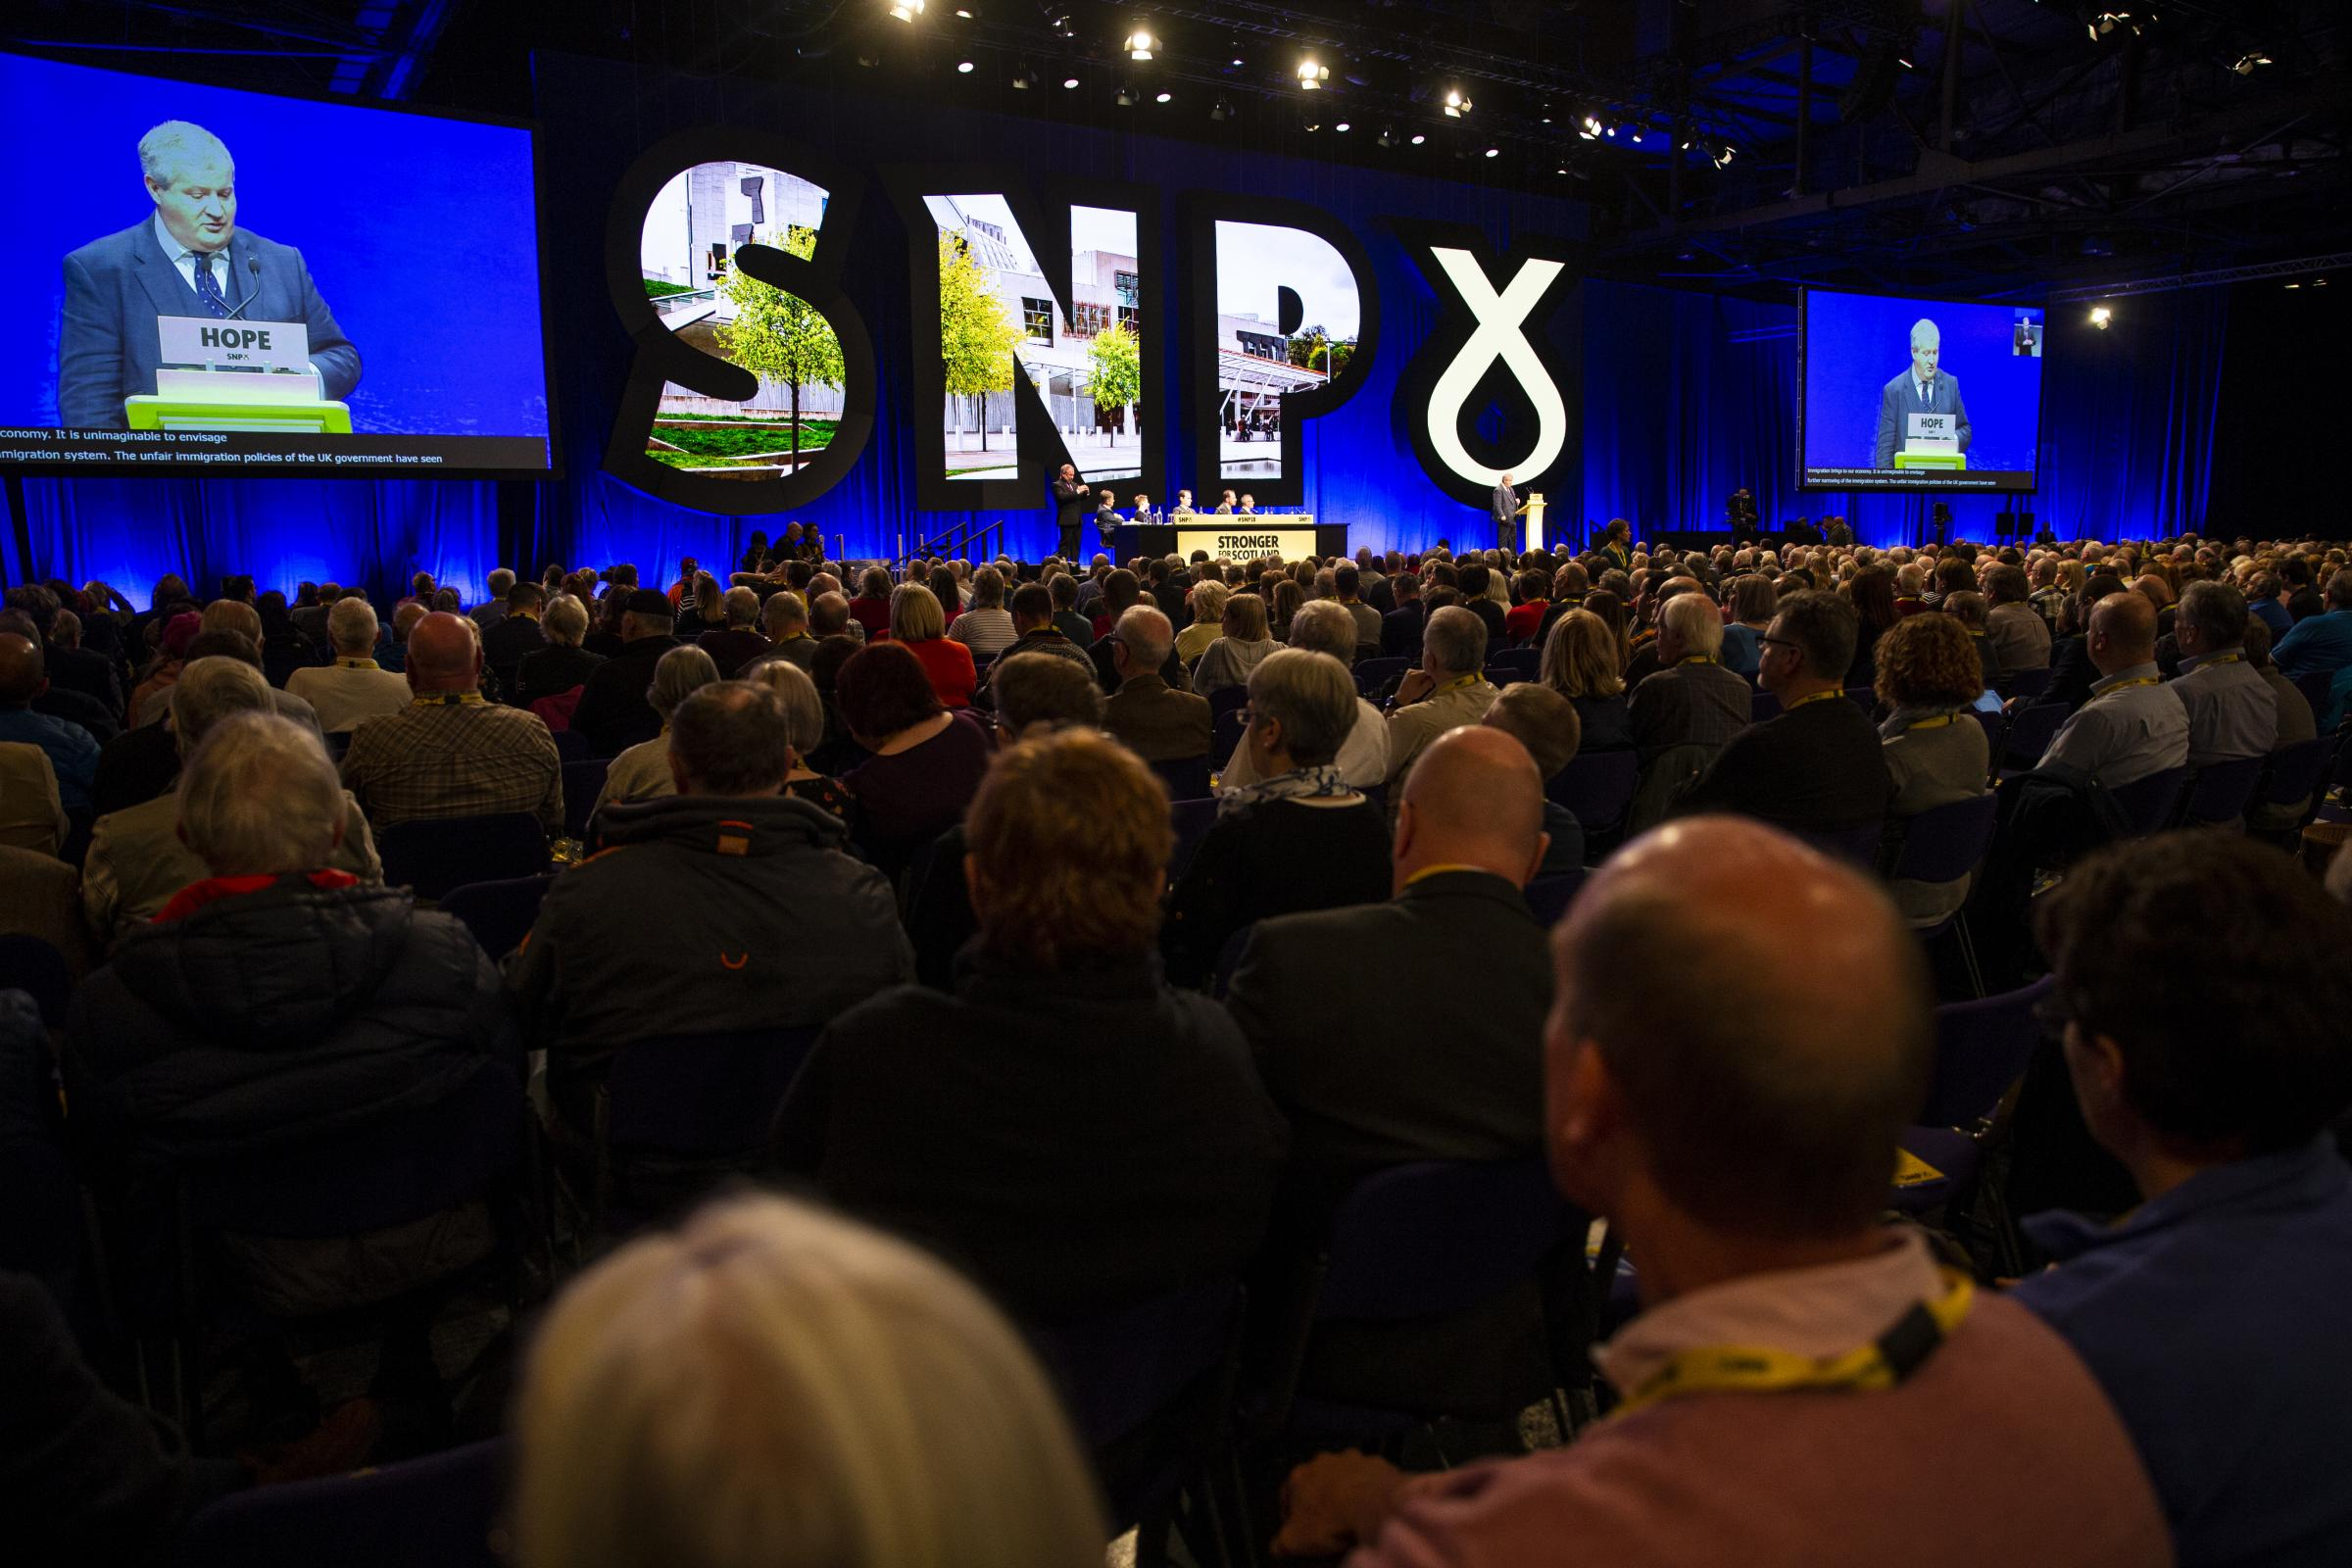 The SNP conference has been taking place in Glasgow since Sunday